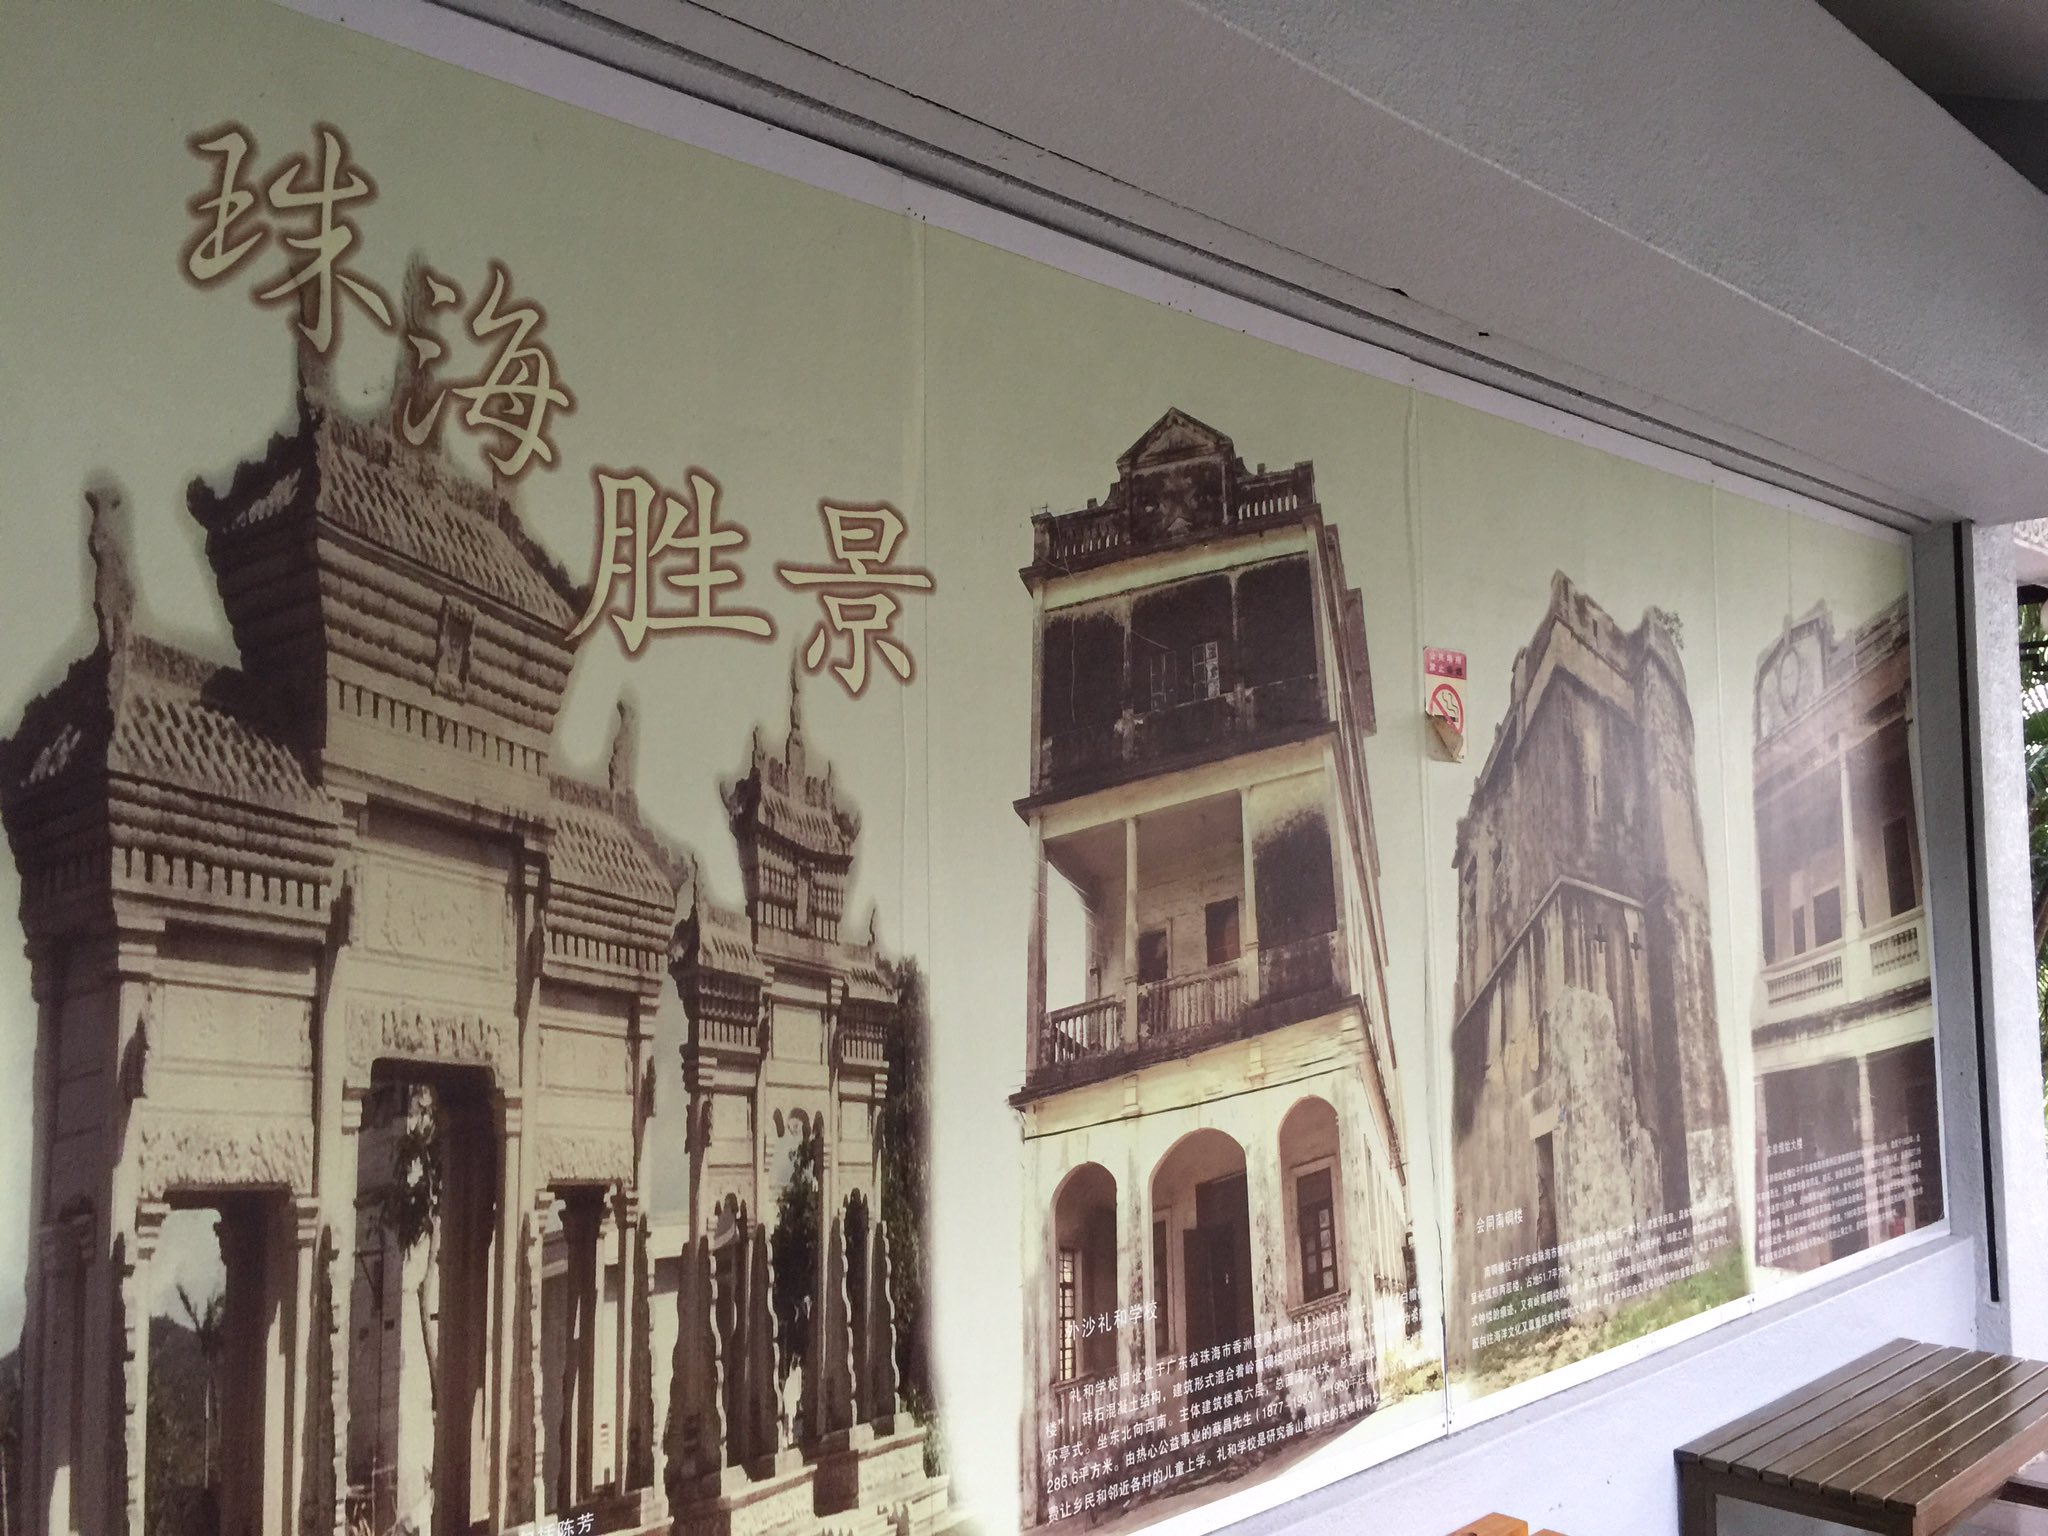 Waisha School, which we'll be visiting on our tour, spotted at the Zhuhai Museum! https://t.co/FUWSFdpG75